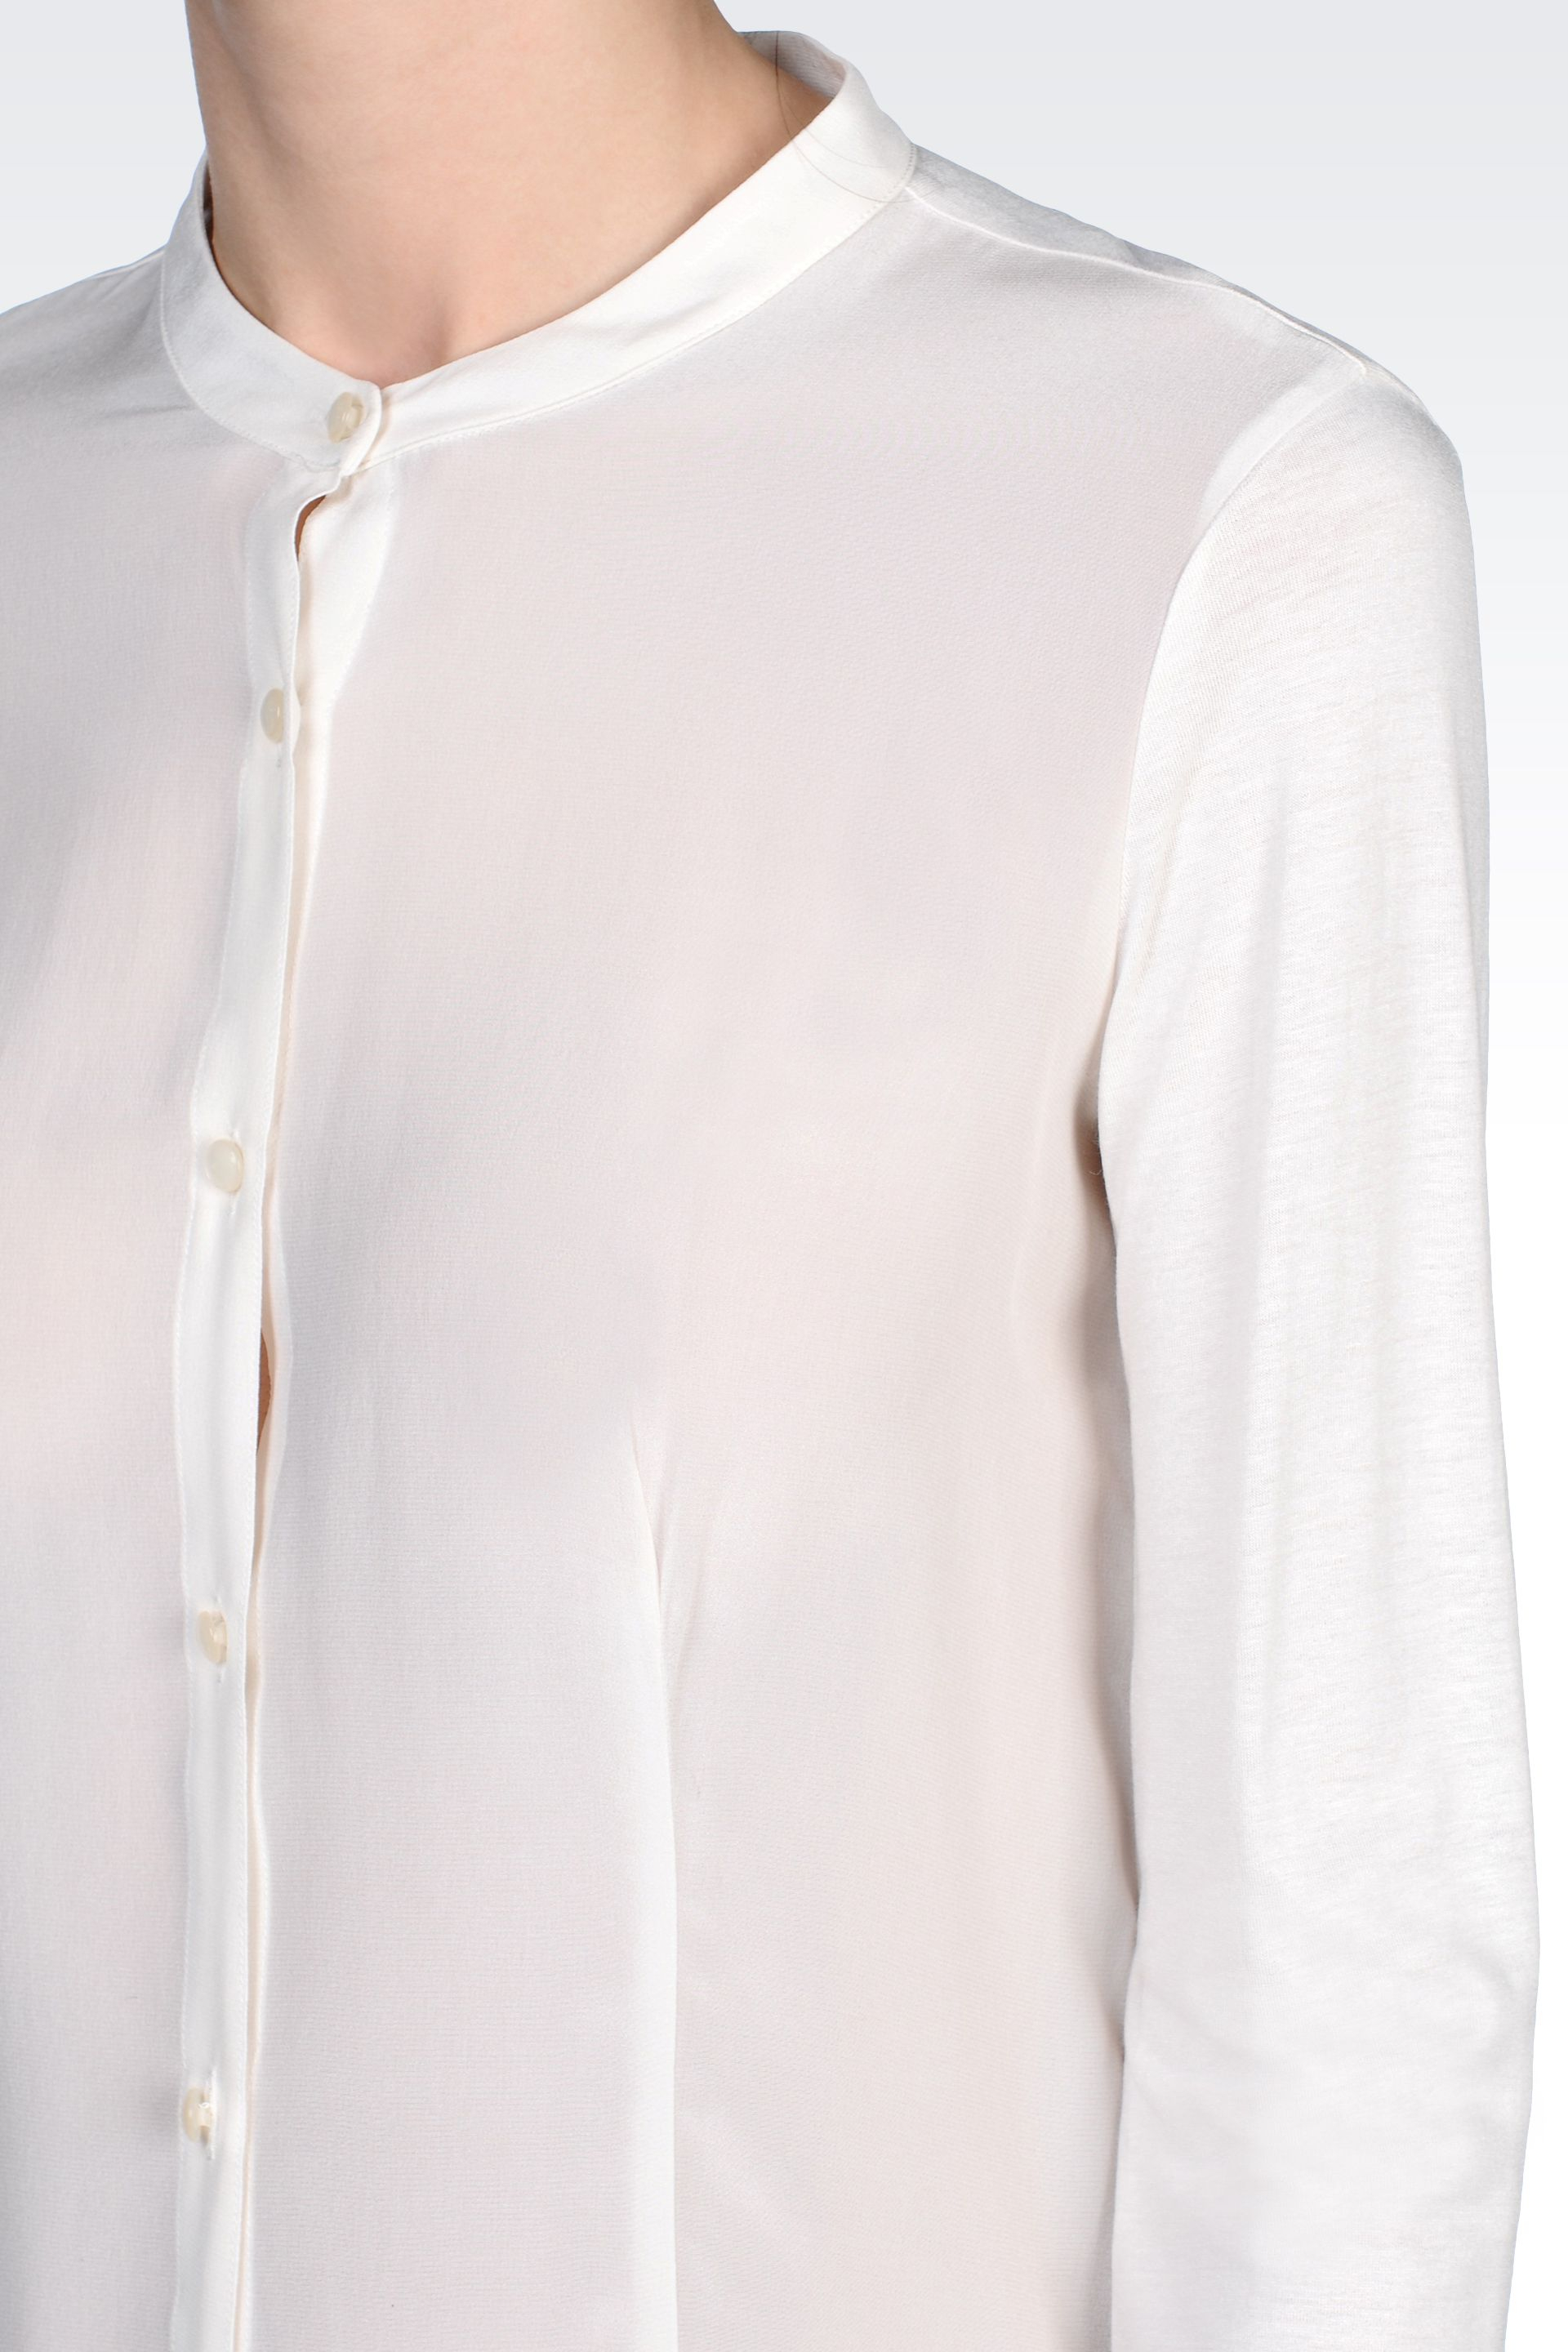 7869efe7f938b Lyst - Armani Jeans Crêpe Silk Shirt with Mandarin Collar in White